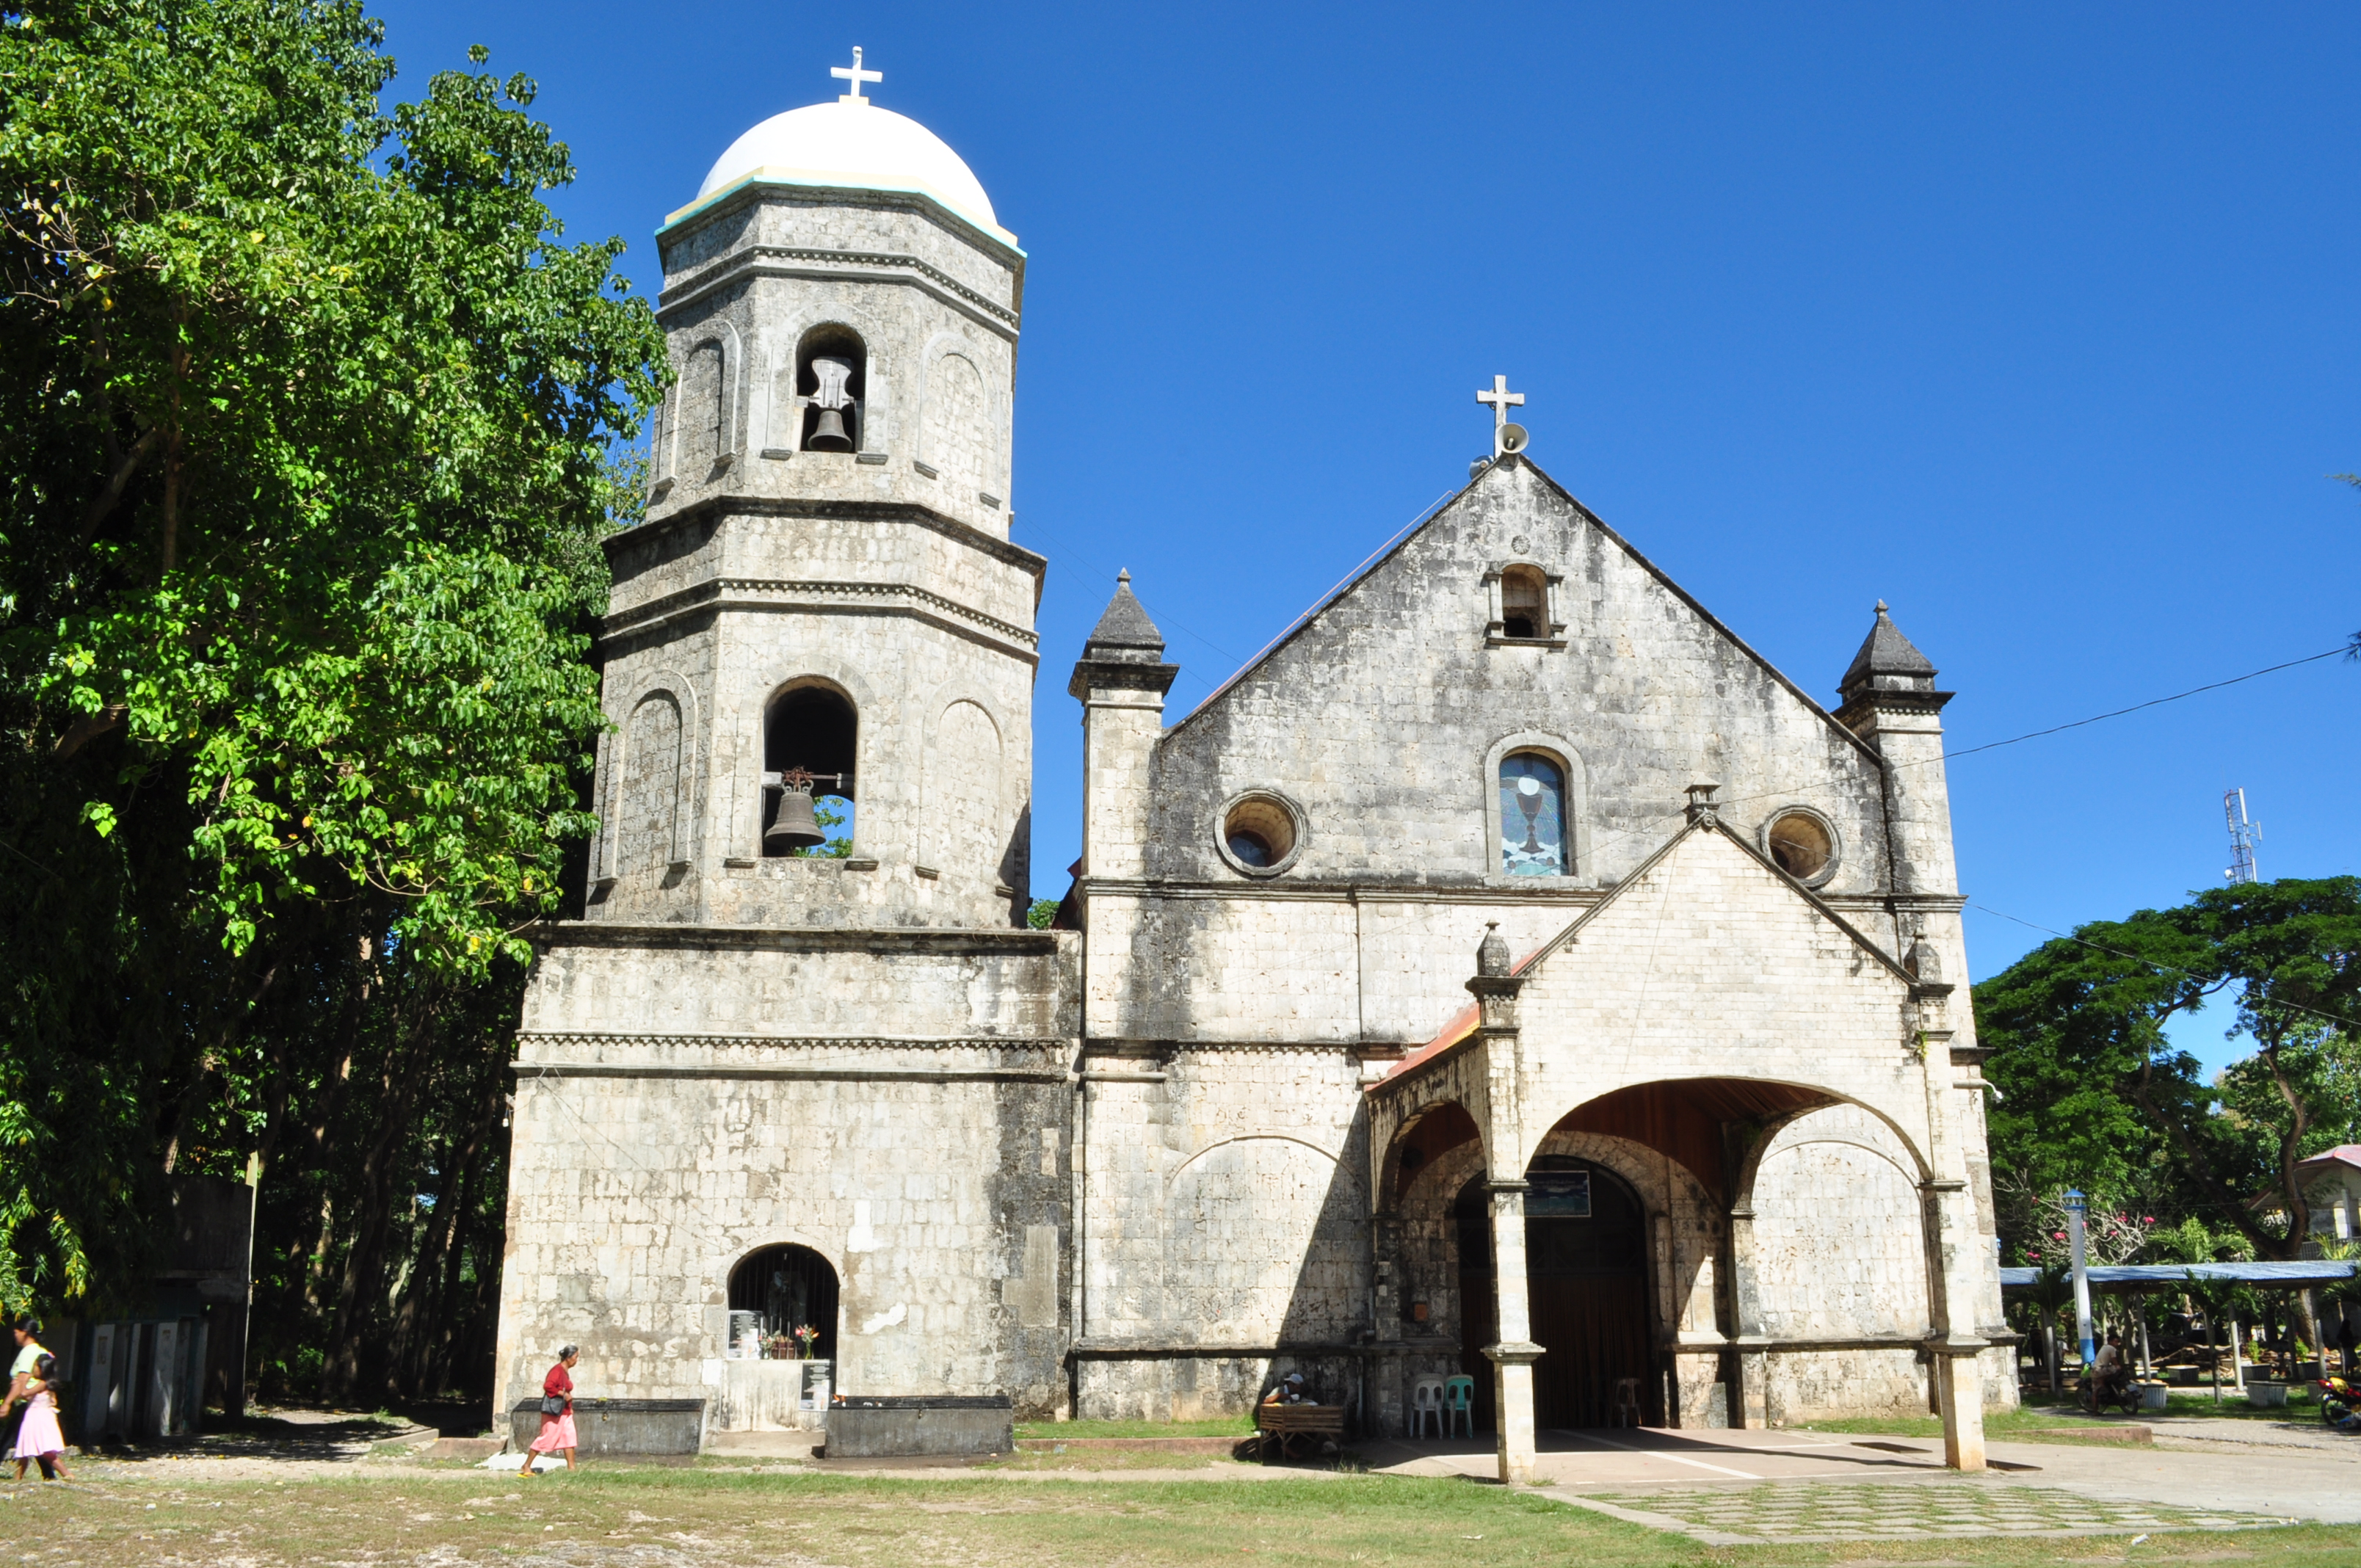 San Guillermo Parish Church. Photo from Joelaldor